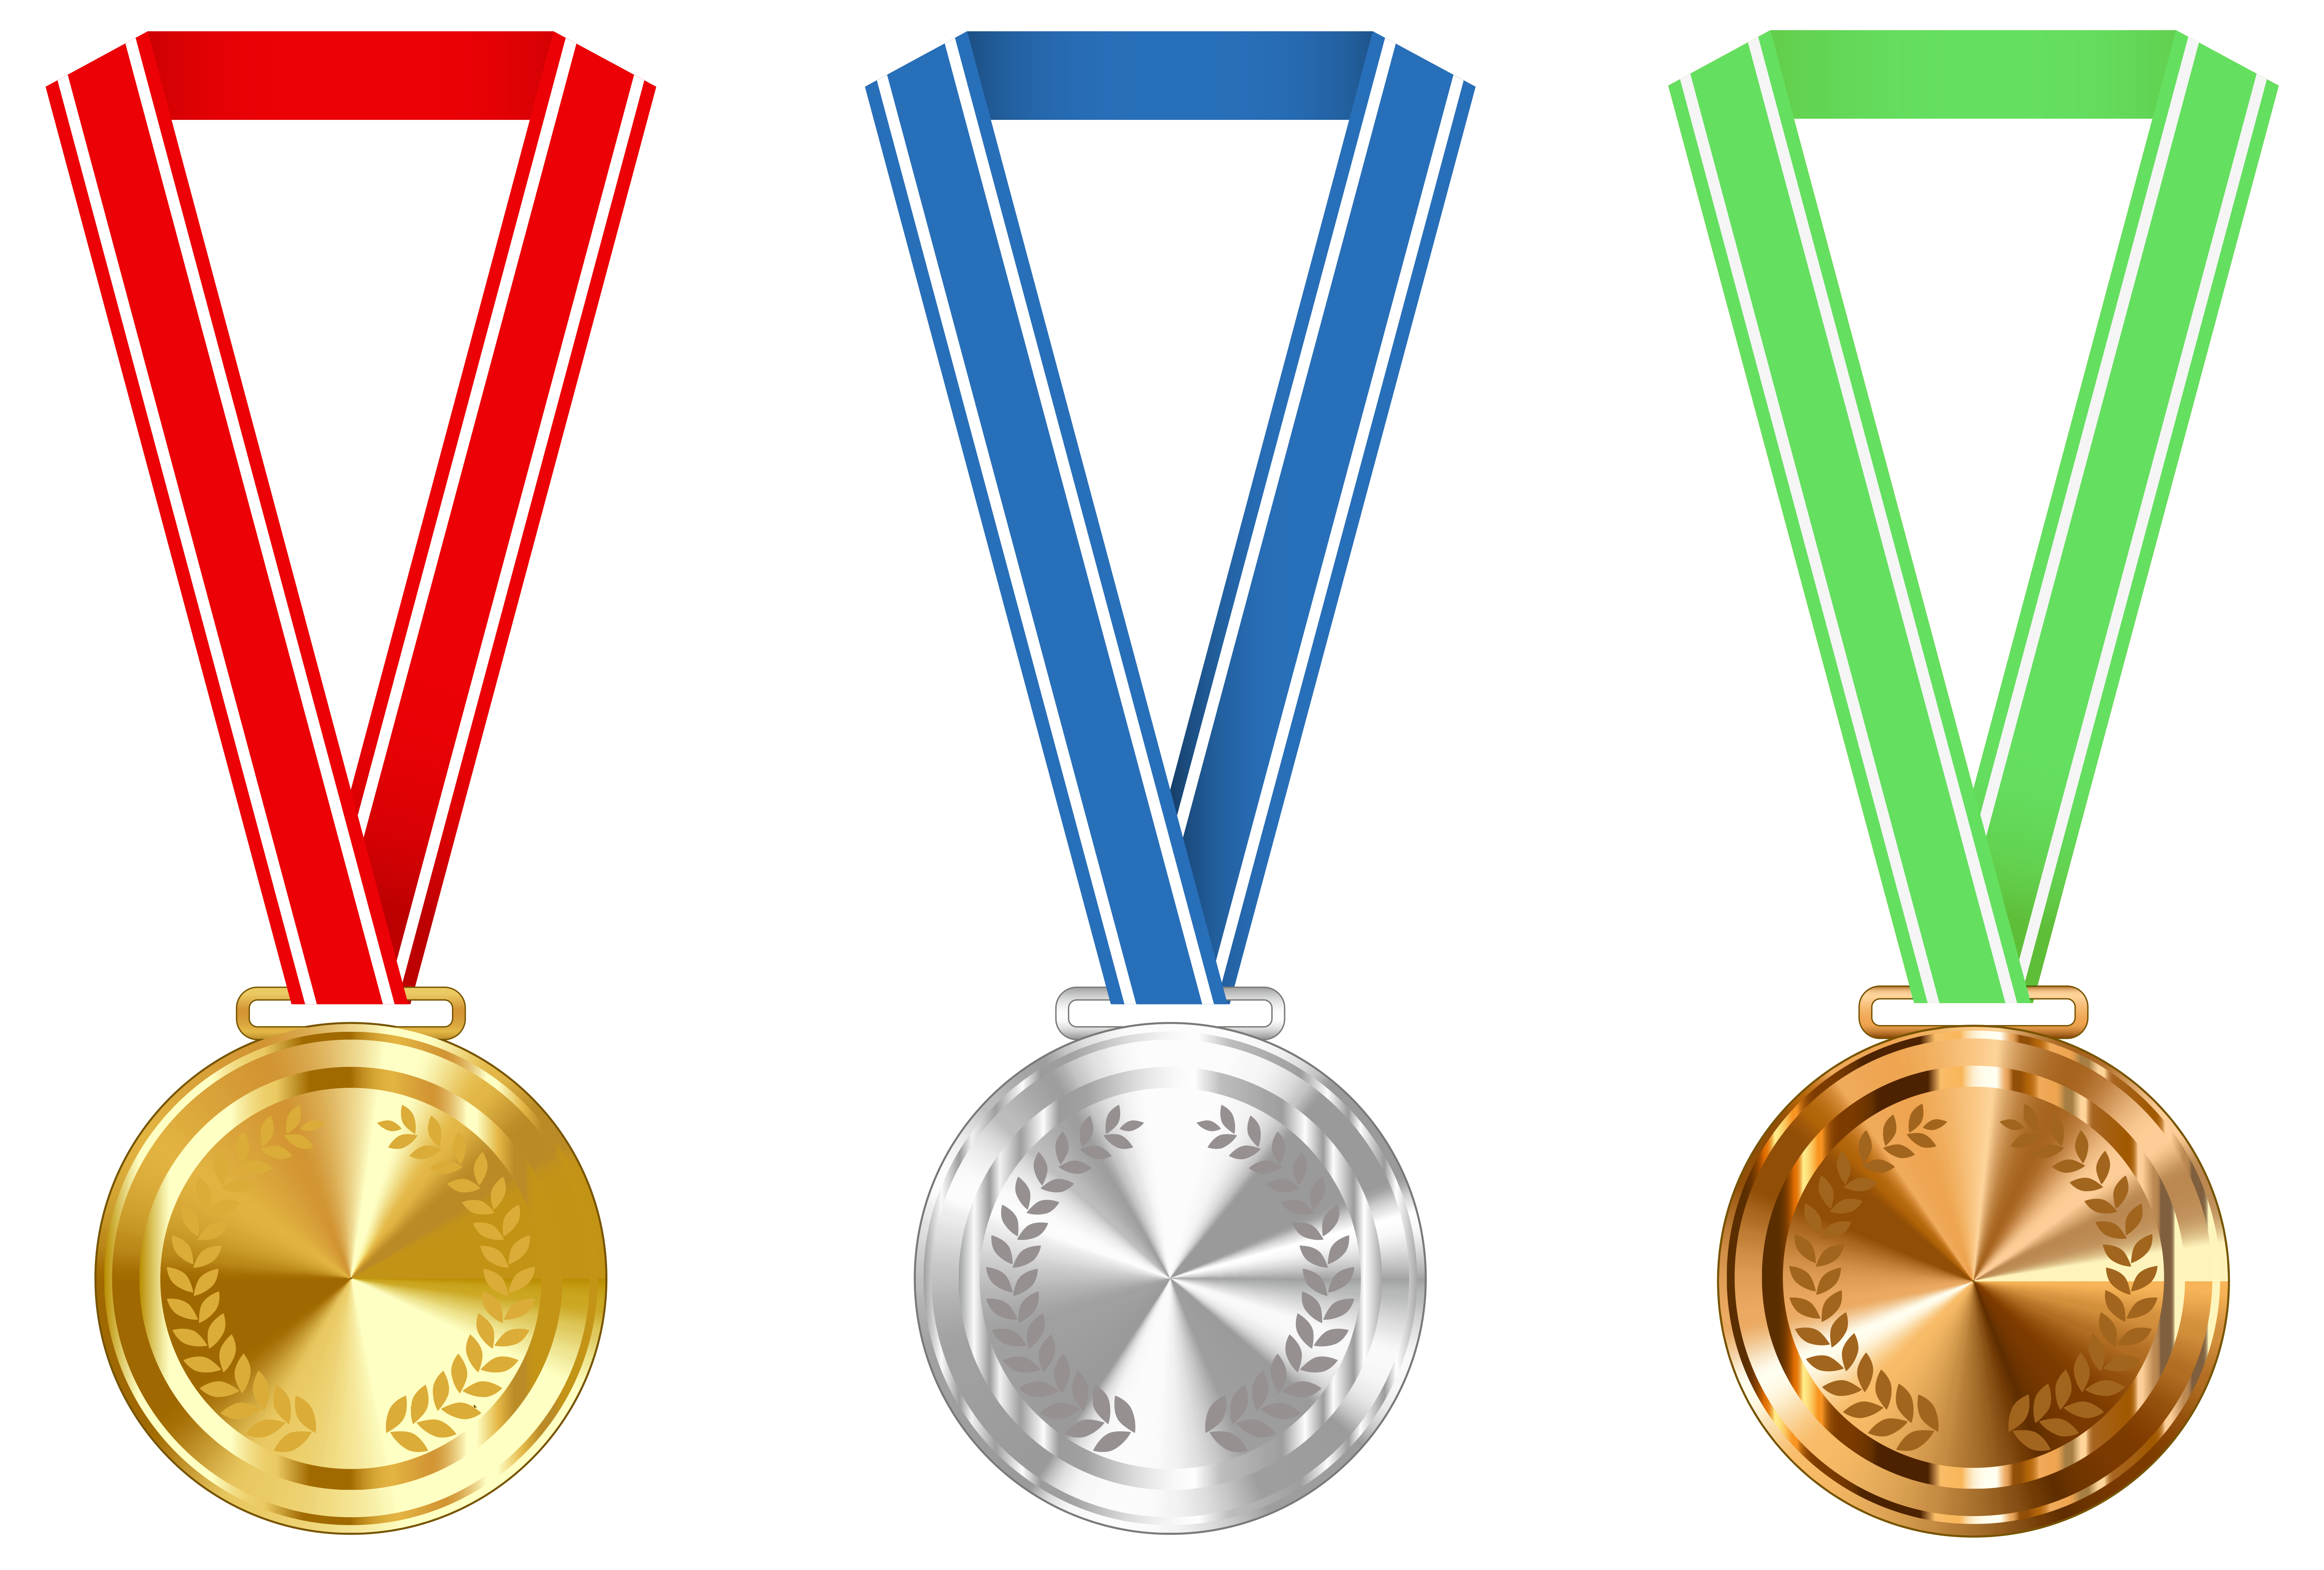 Medal and certificate clipart clip art free stock Pin by Andolina Mustafa on Stuff to buy | Clipart images, Clip art ... clip art free stock